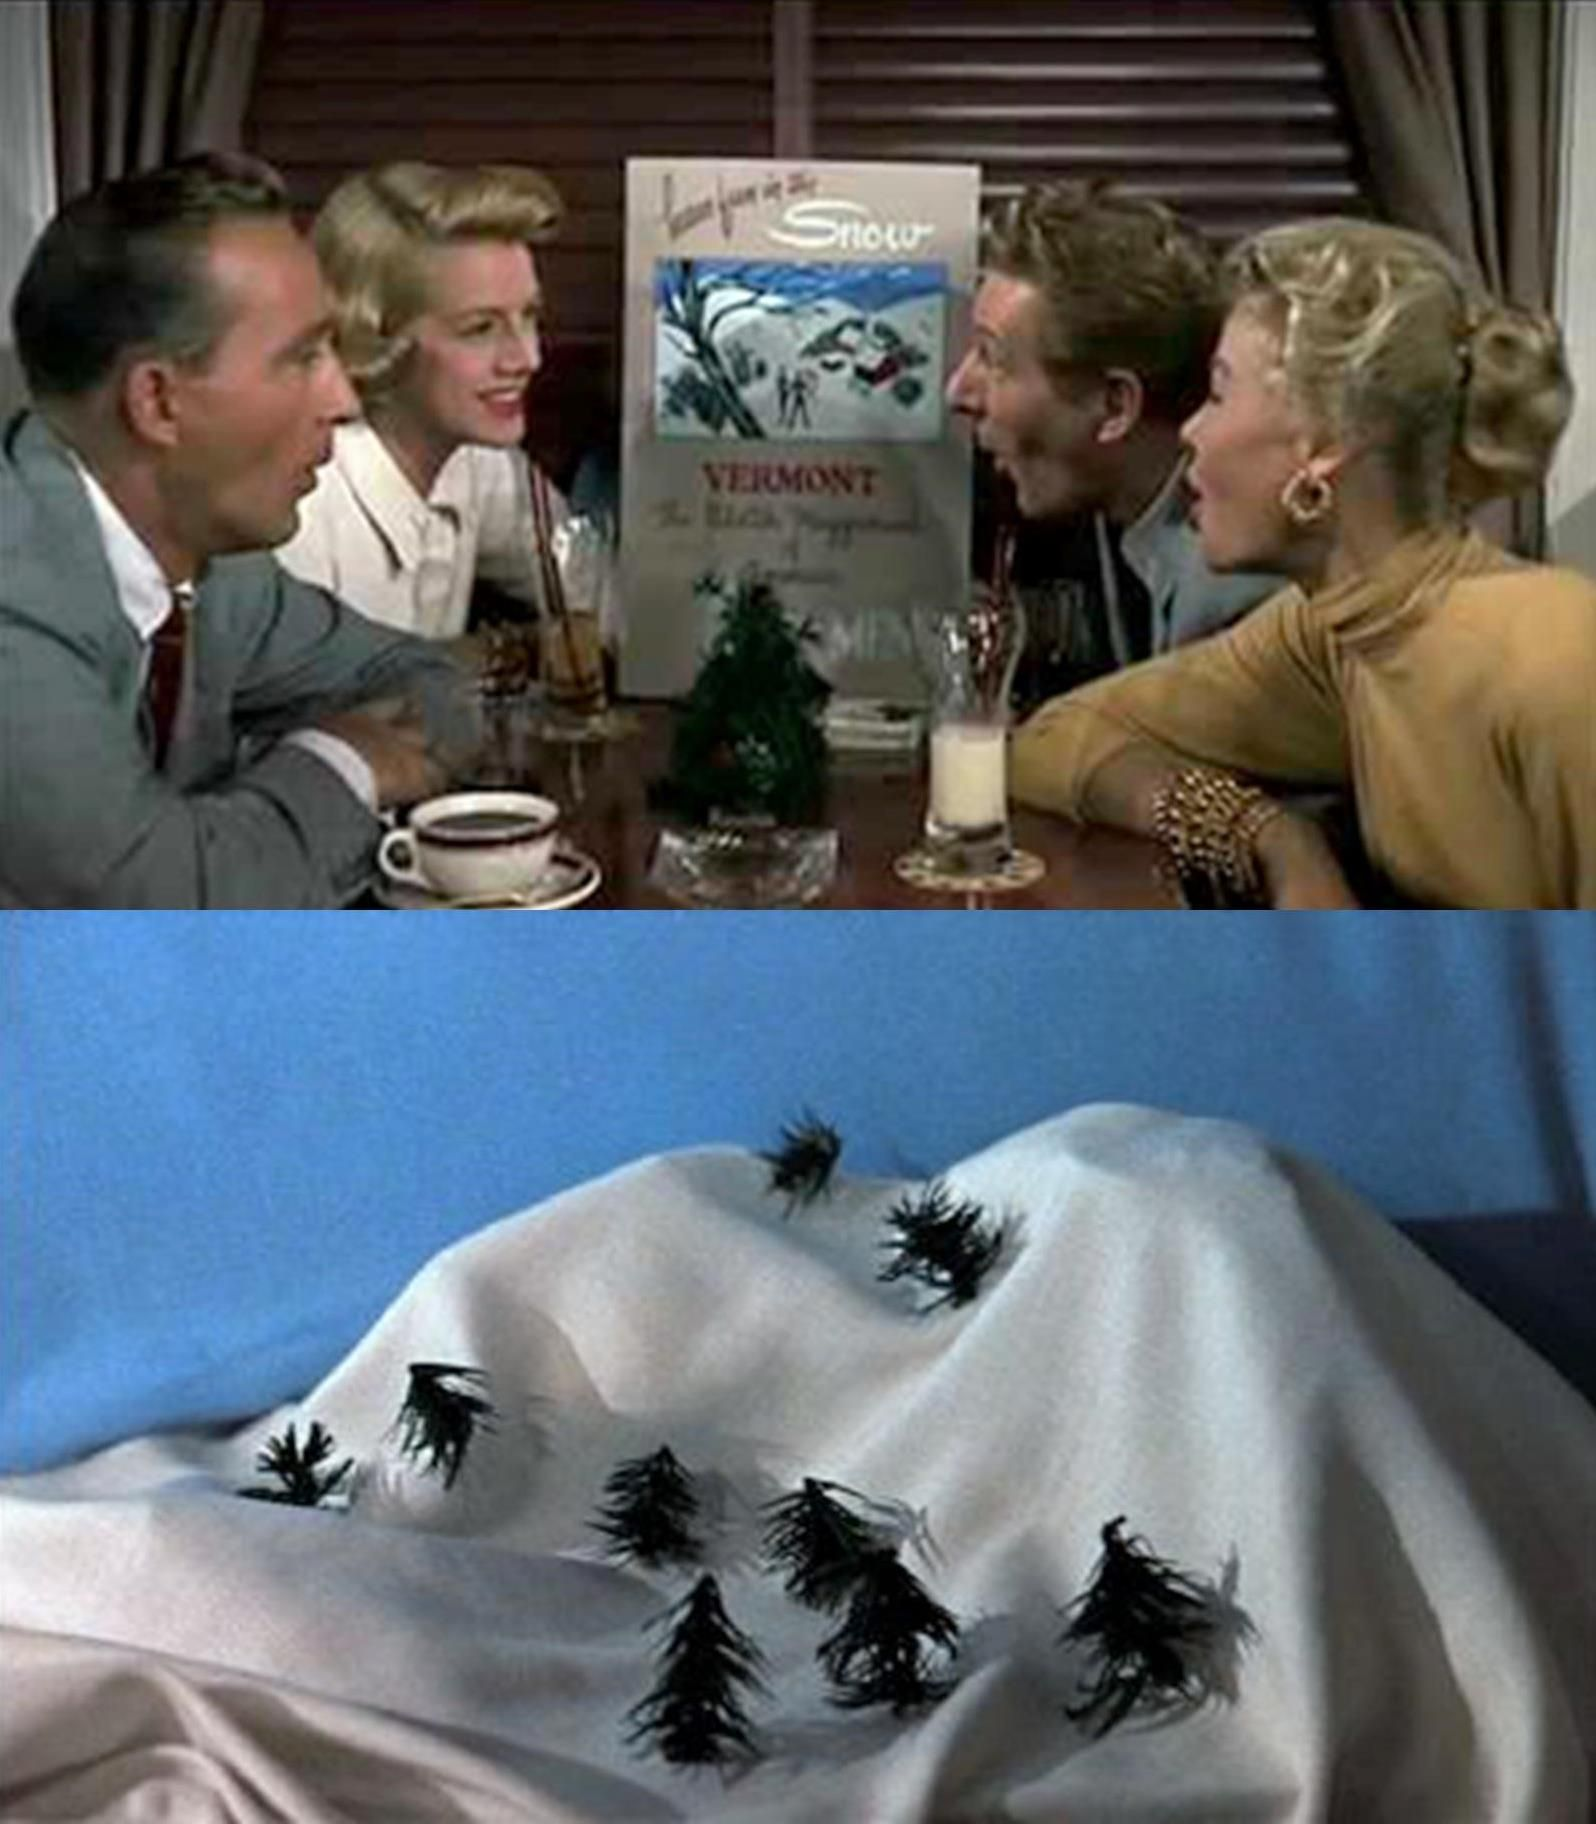 bing crosby rosemary clooney danny kaye and vera ellen sing a song about snow in white christmas 1954 - White Christmas Snow Song